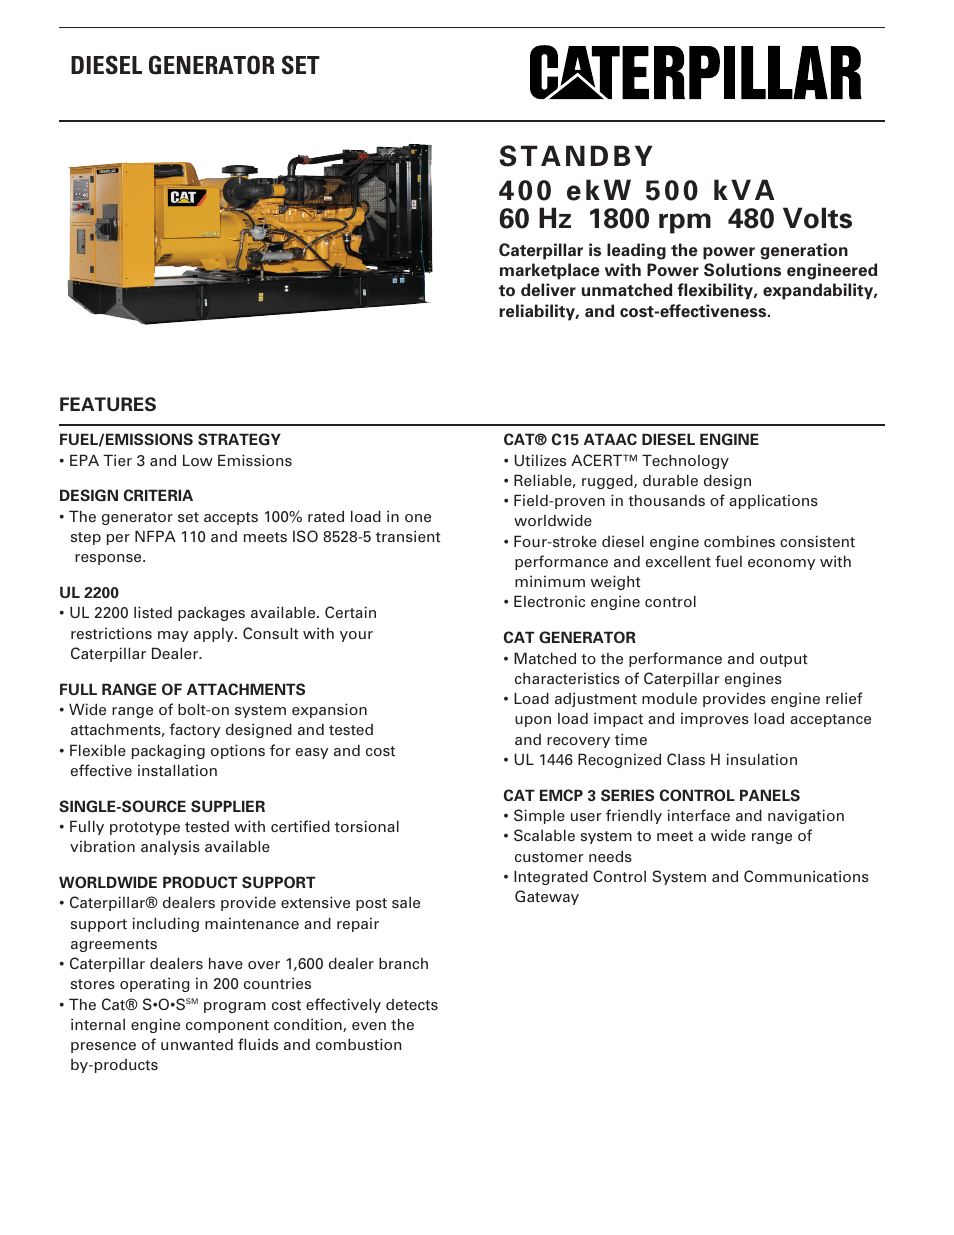 Milton CAT C15 400 ekW 500 kVA 60 Hz 1800 rpm 480 Volts Spec Sheet